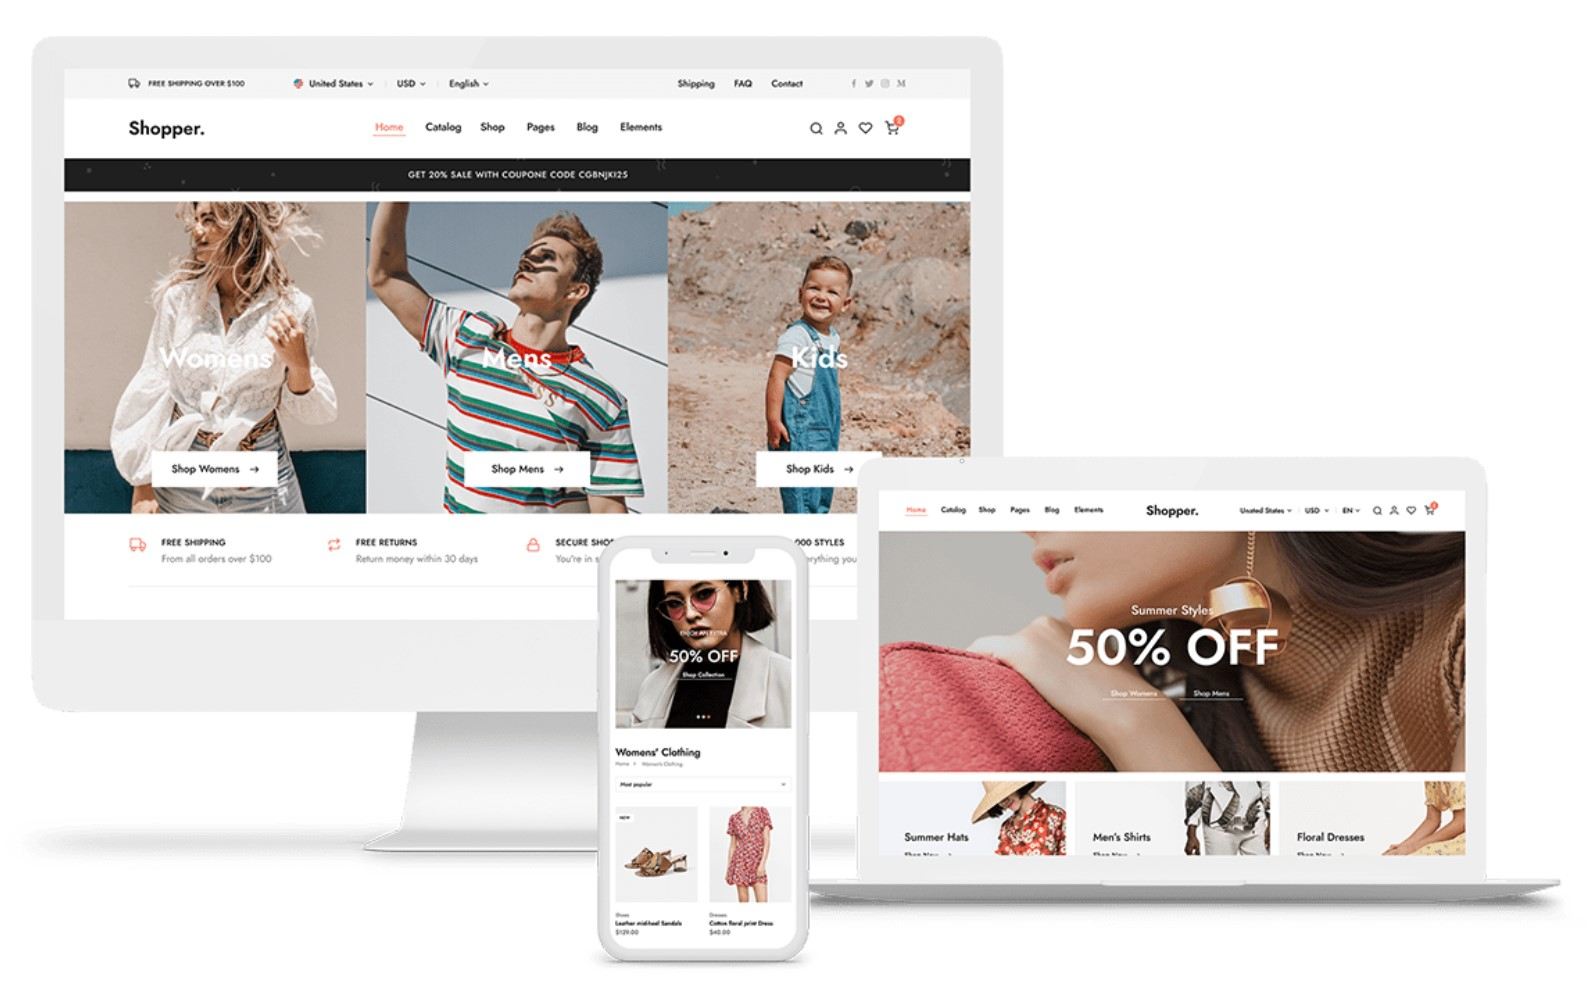 BravePoS eCommerce Store Start selling online with Build an ecommerce store, accept online orders for pickup or delivery, and grow your business with marketing tools